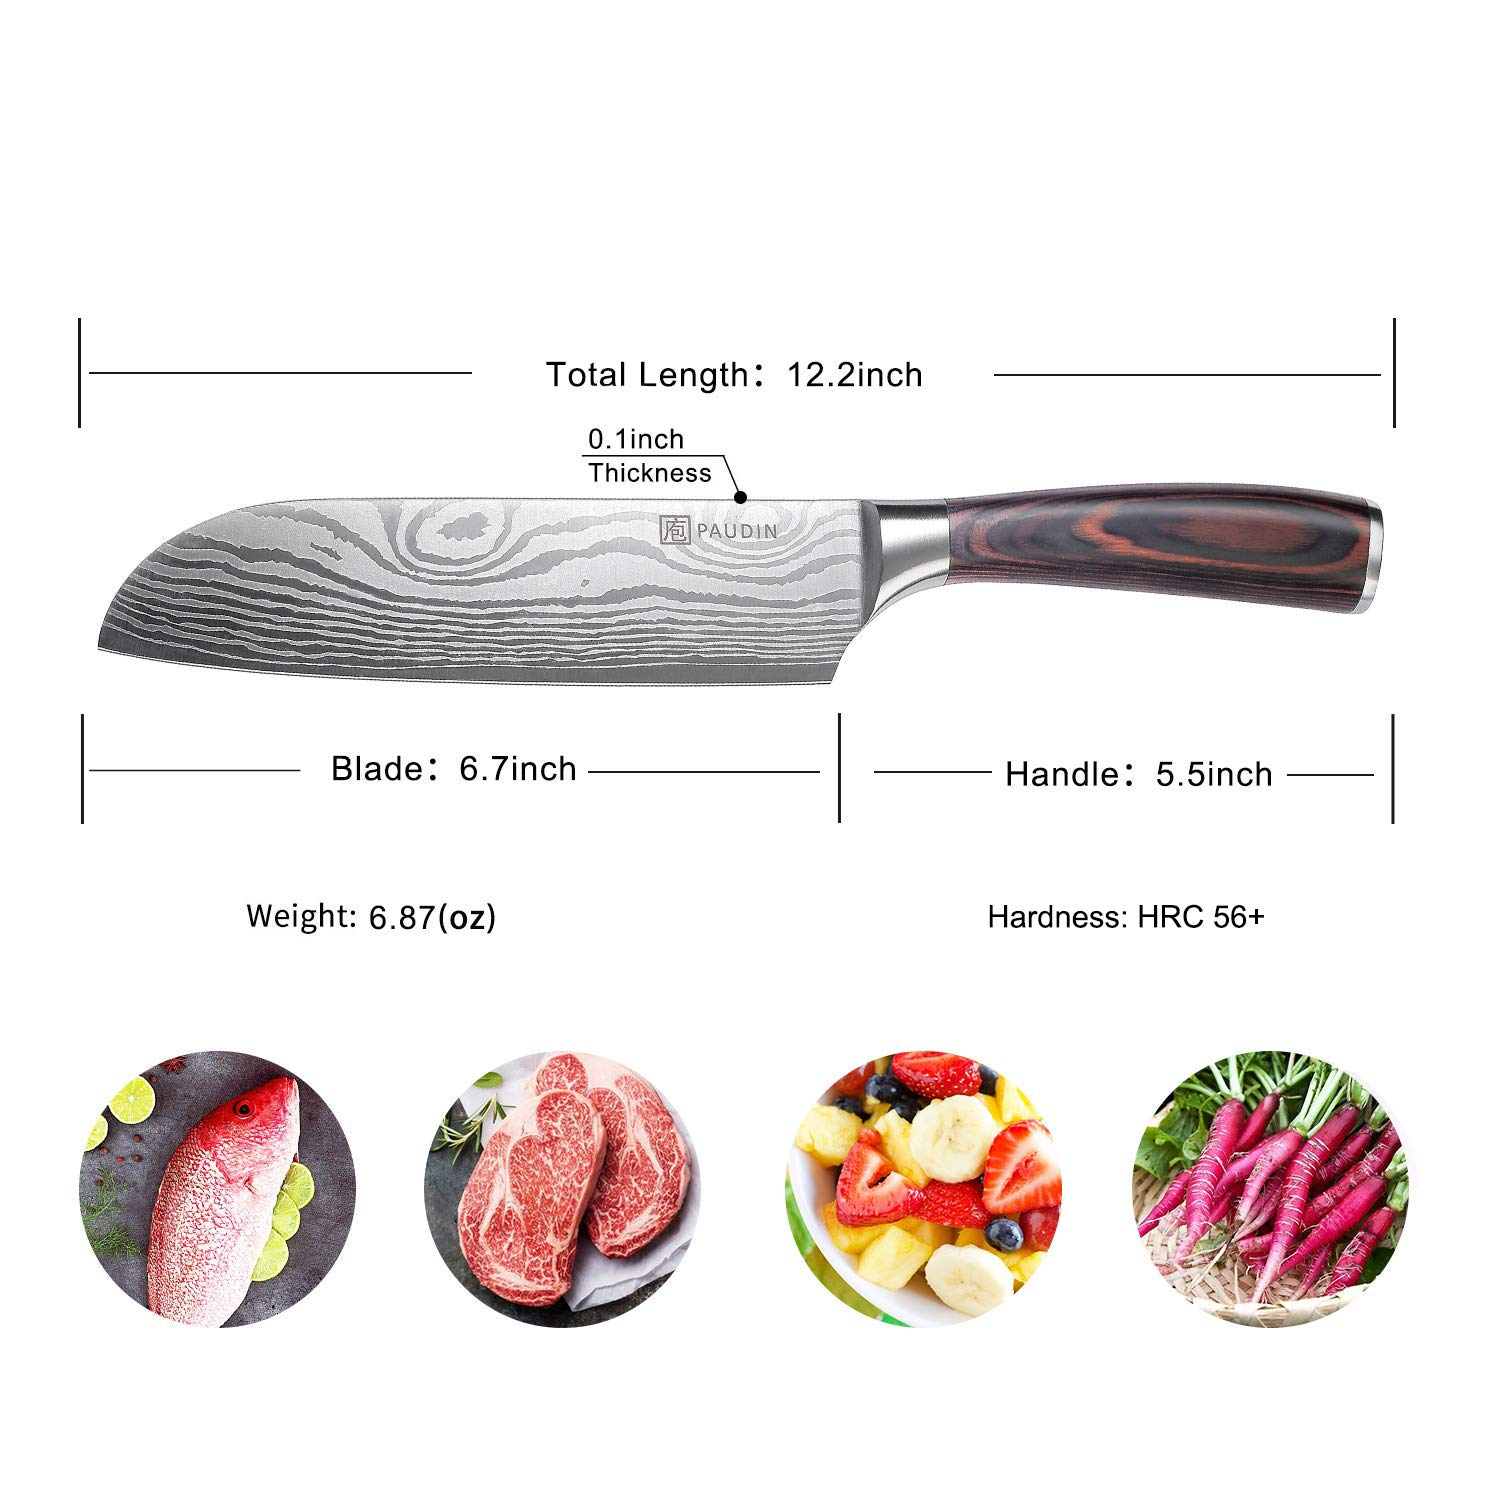 Santoku Knife - PAUDIN Classic 7 inch Hollow Ground Sharp Knife, German High Carbon Stainless Steel Kitchen Knife by PAUDIN (Image #7)